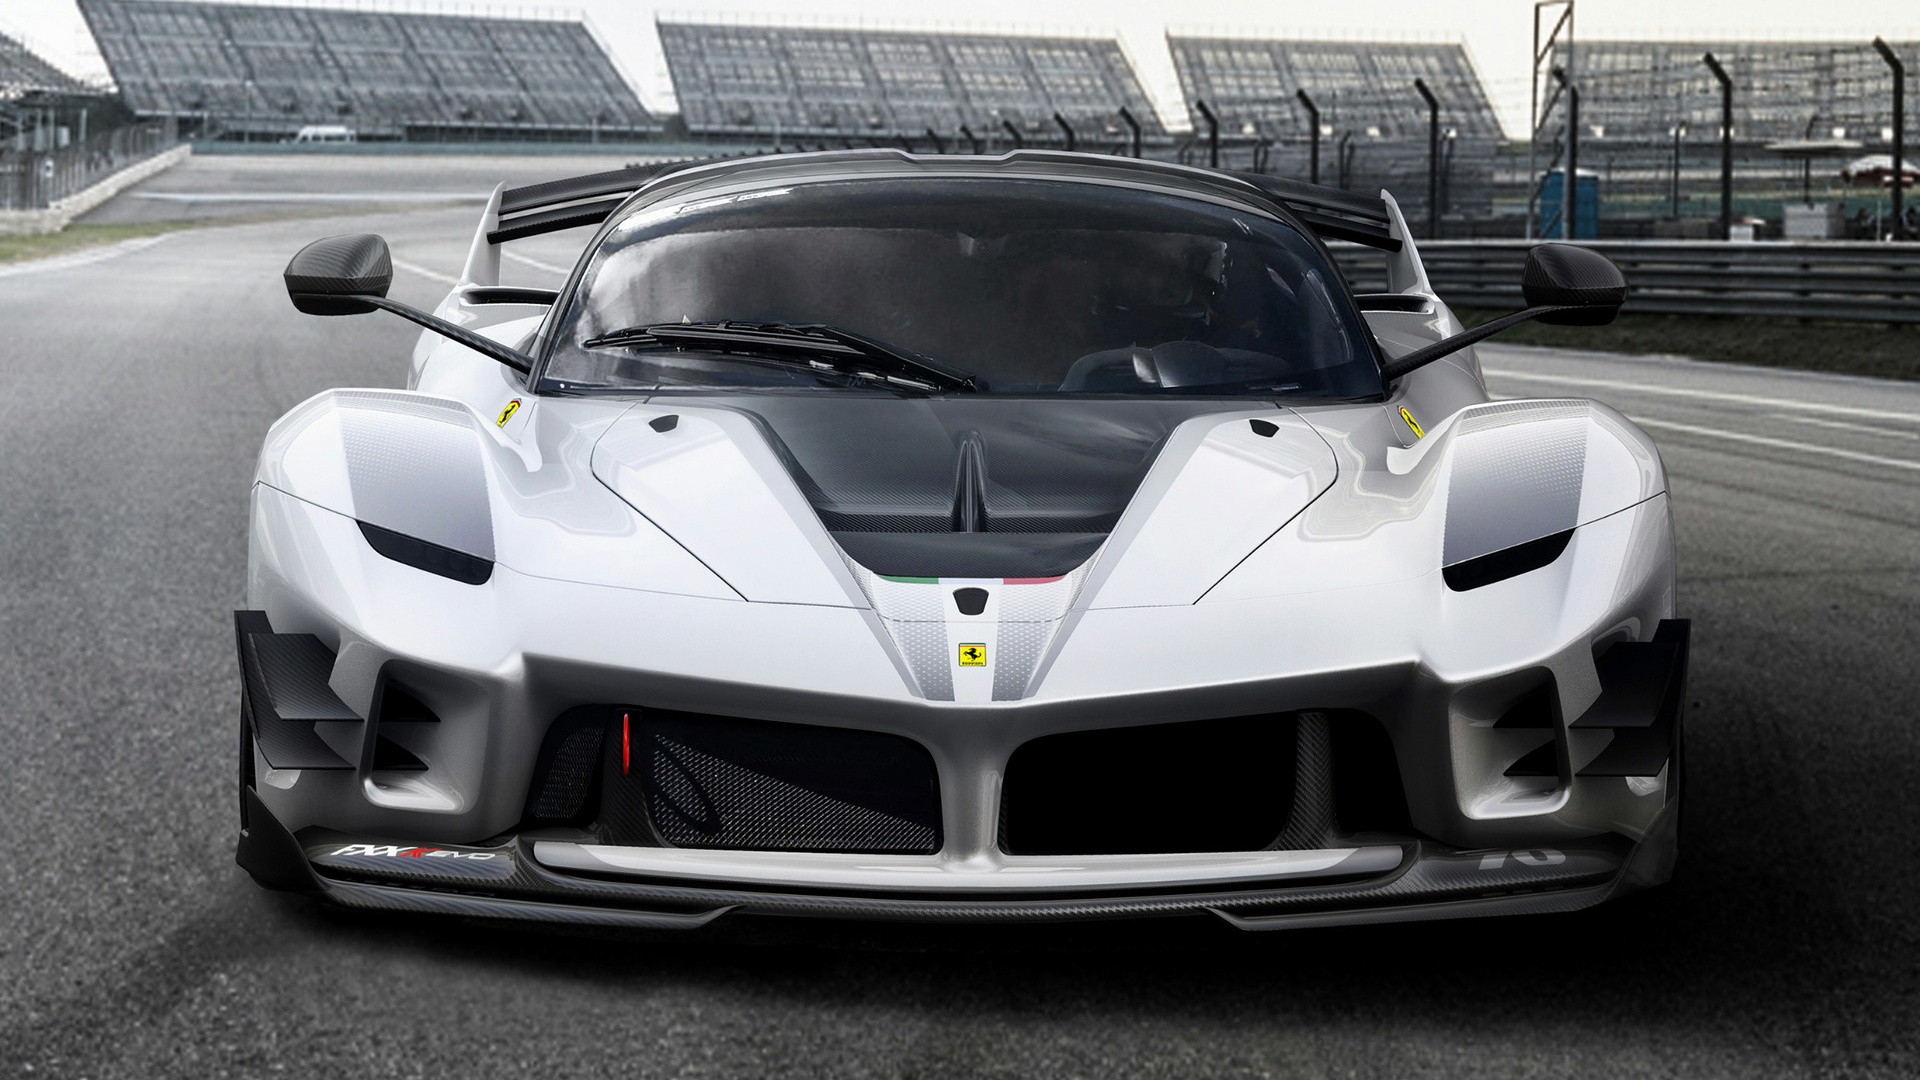 2018 Ferrari Fxx K Evo Wallpapers And Hd Images Car Pixel